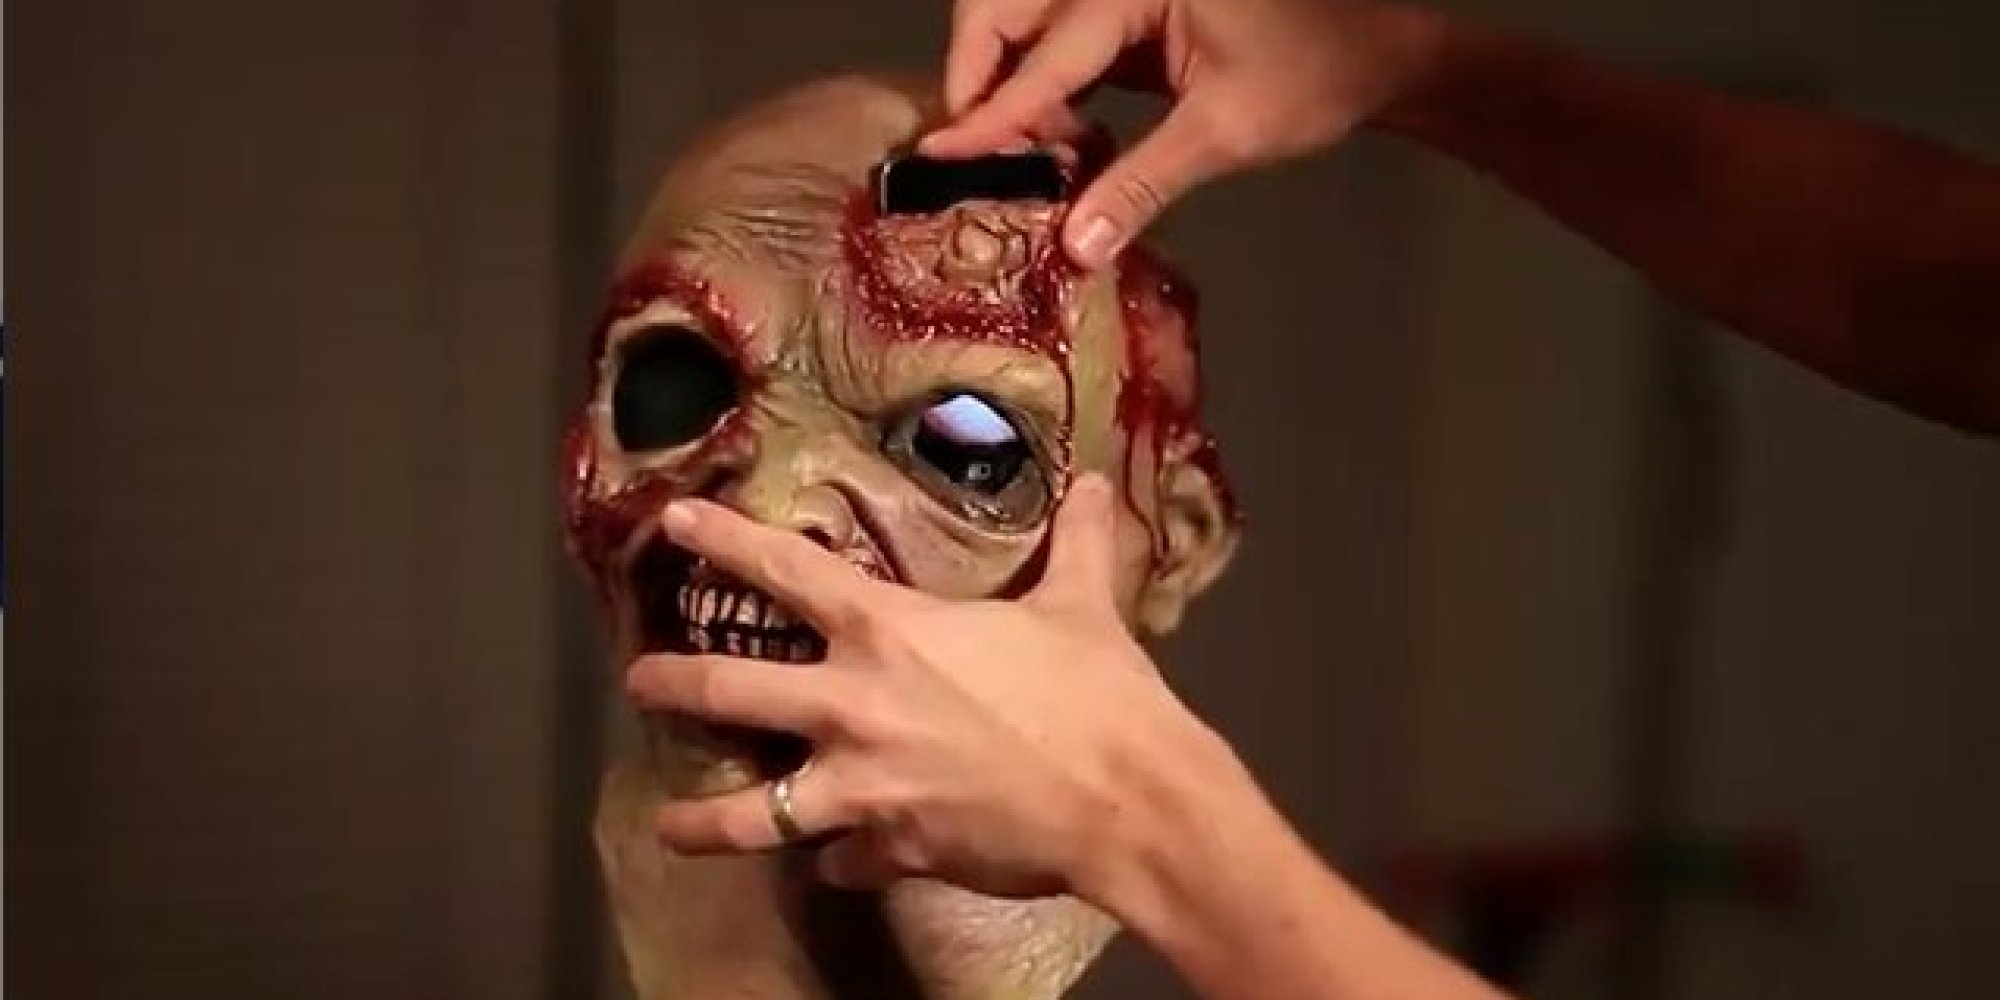 Former NASA Engineer Uses iPhones, Androids To Make Extra Creepy ...